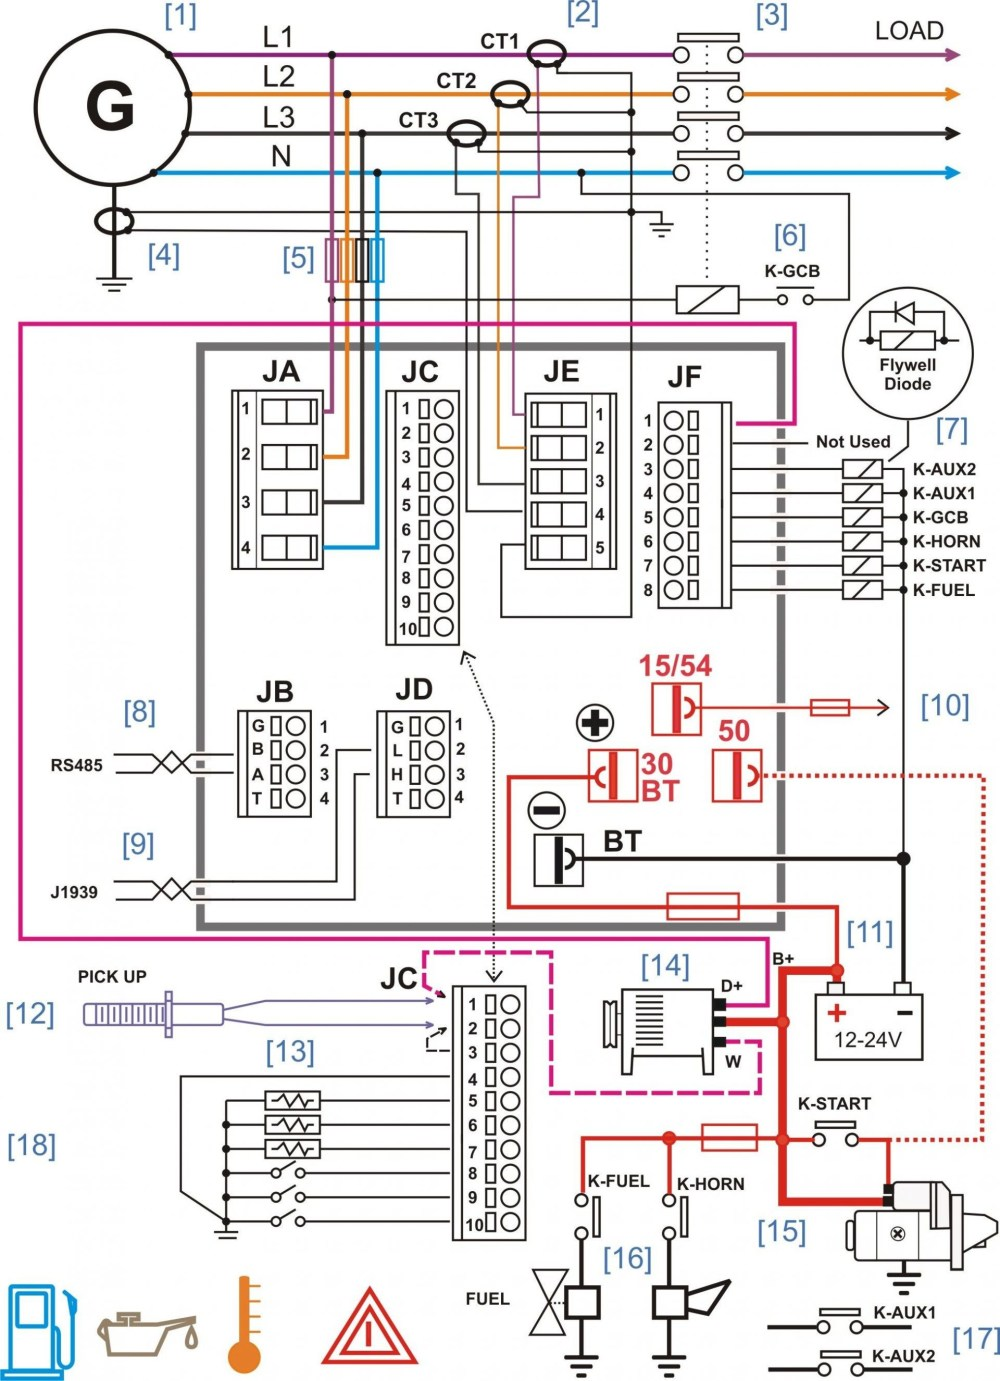 medium resolution of peugeot 107 radio wiring diagram electrical engineering wiring diagram citroen c1 wiring diagram data wiring diagramc1